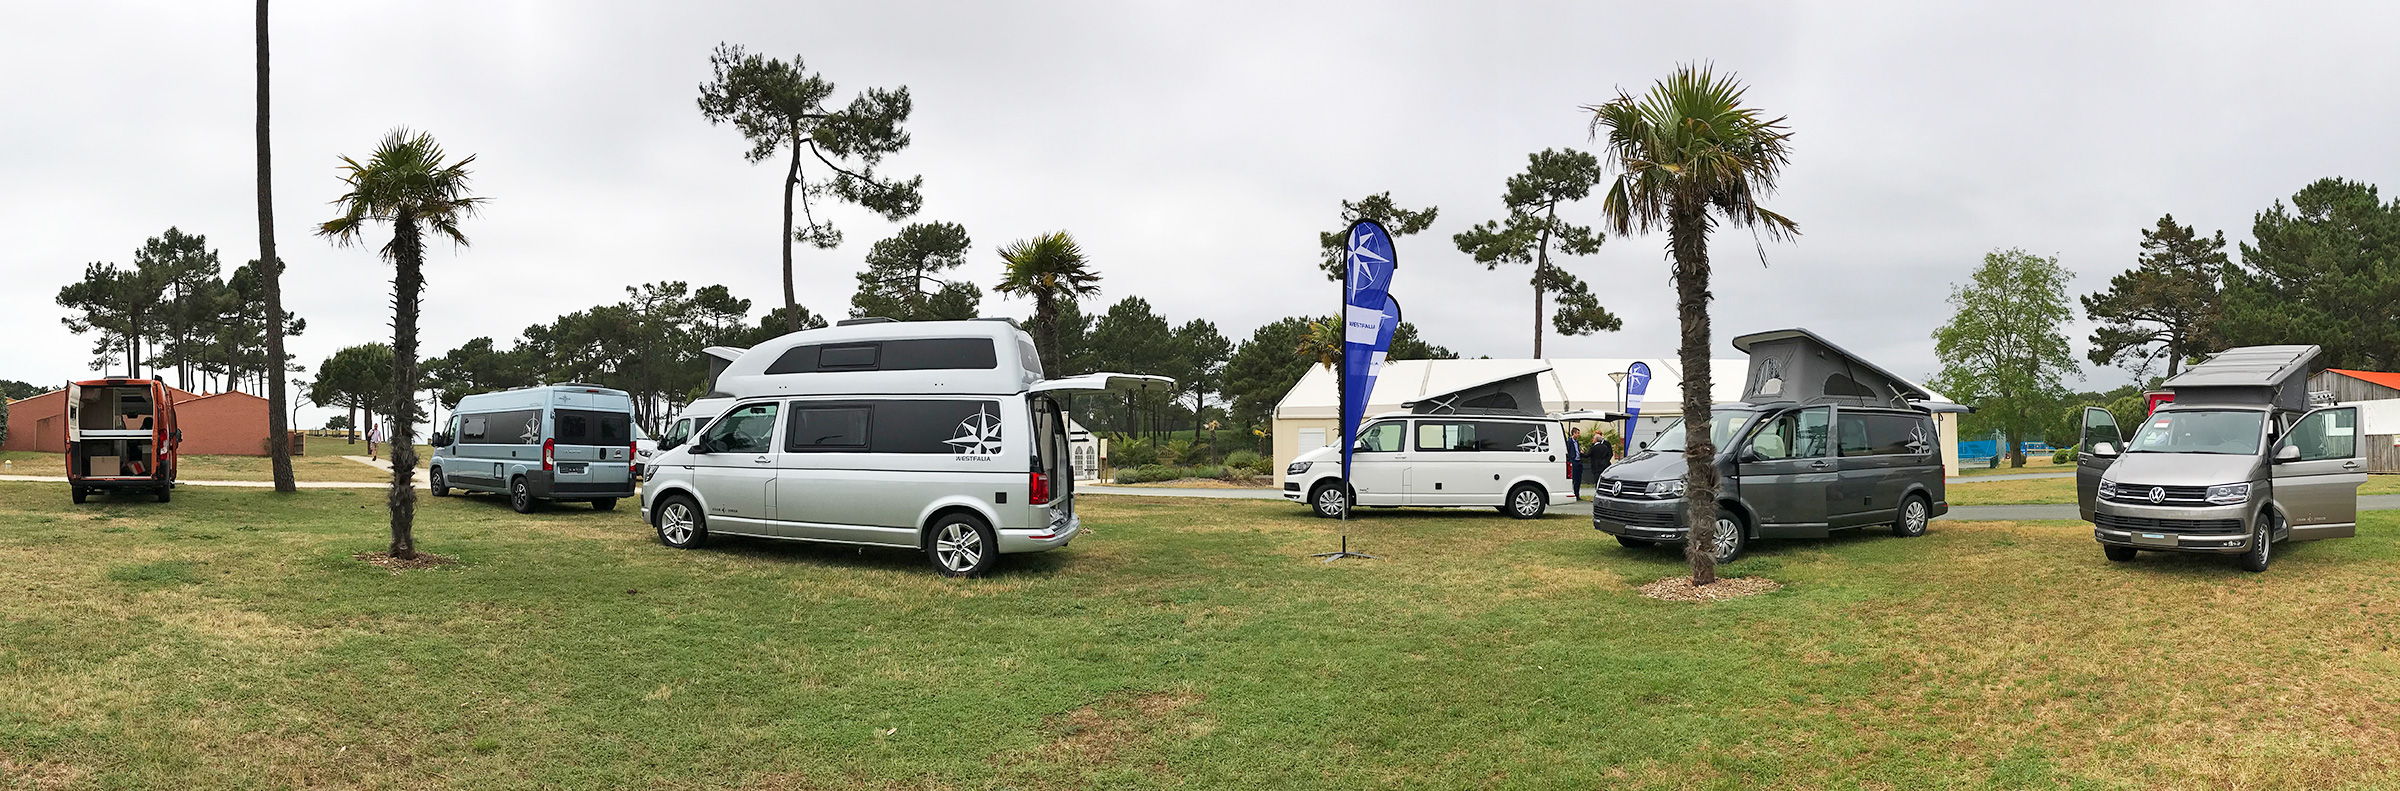 Gamme fourgons 2019 - convention Westfalia 2018